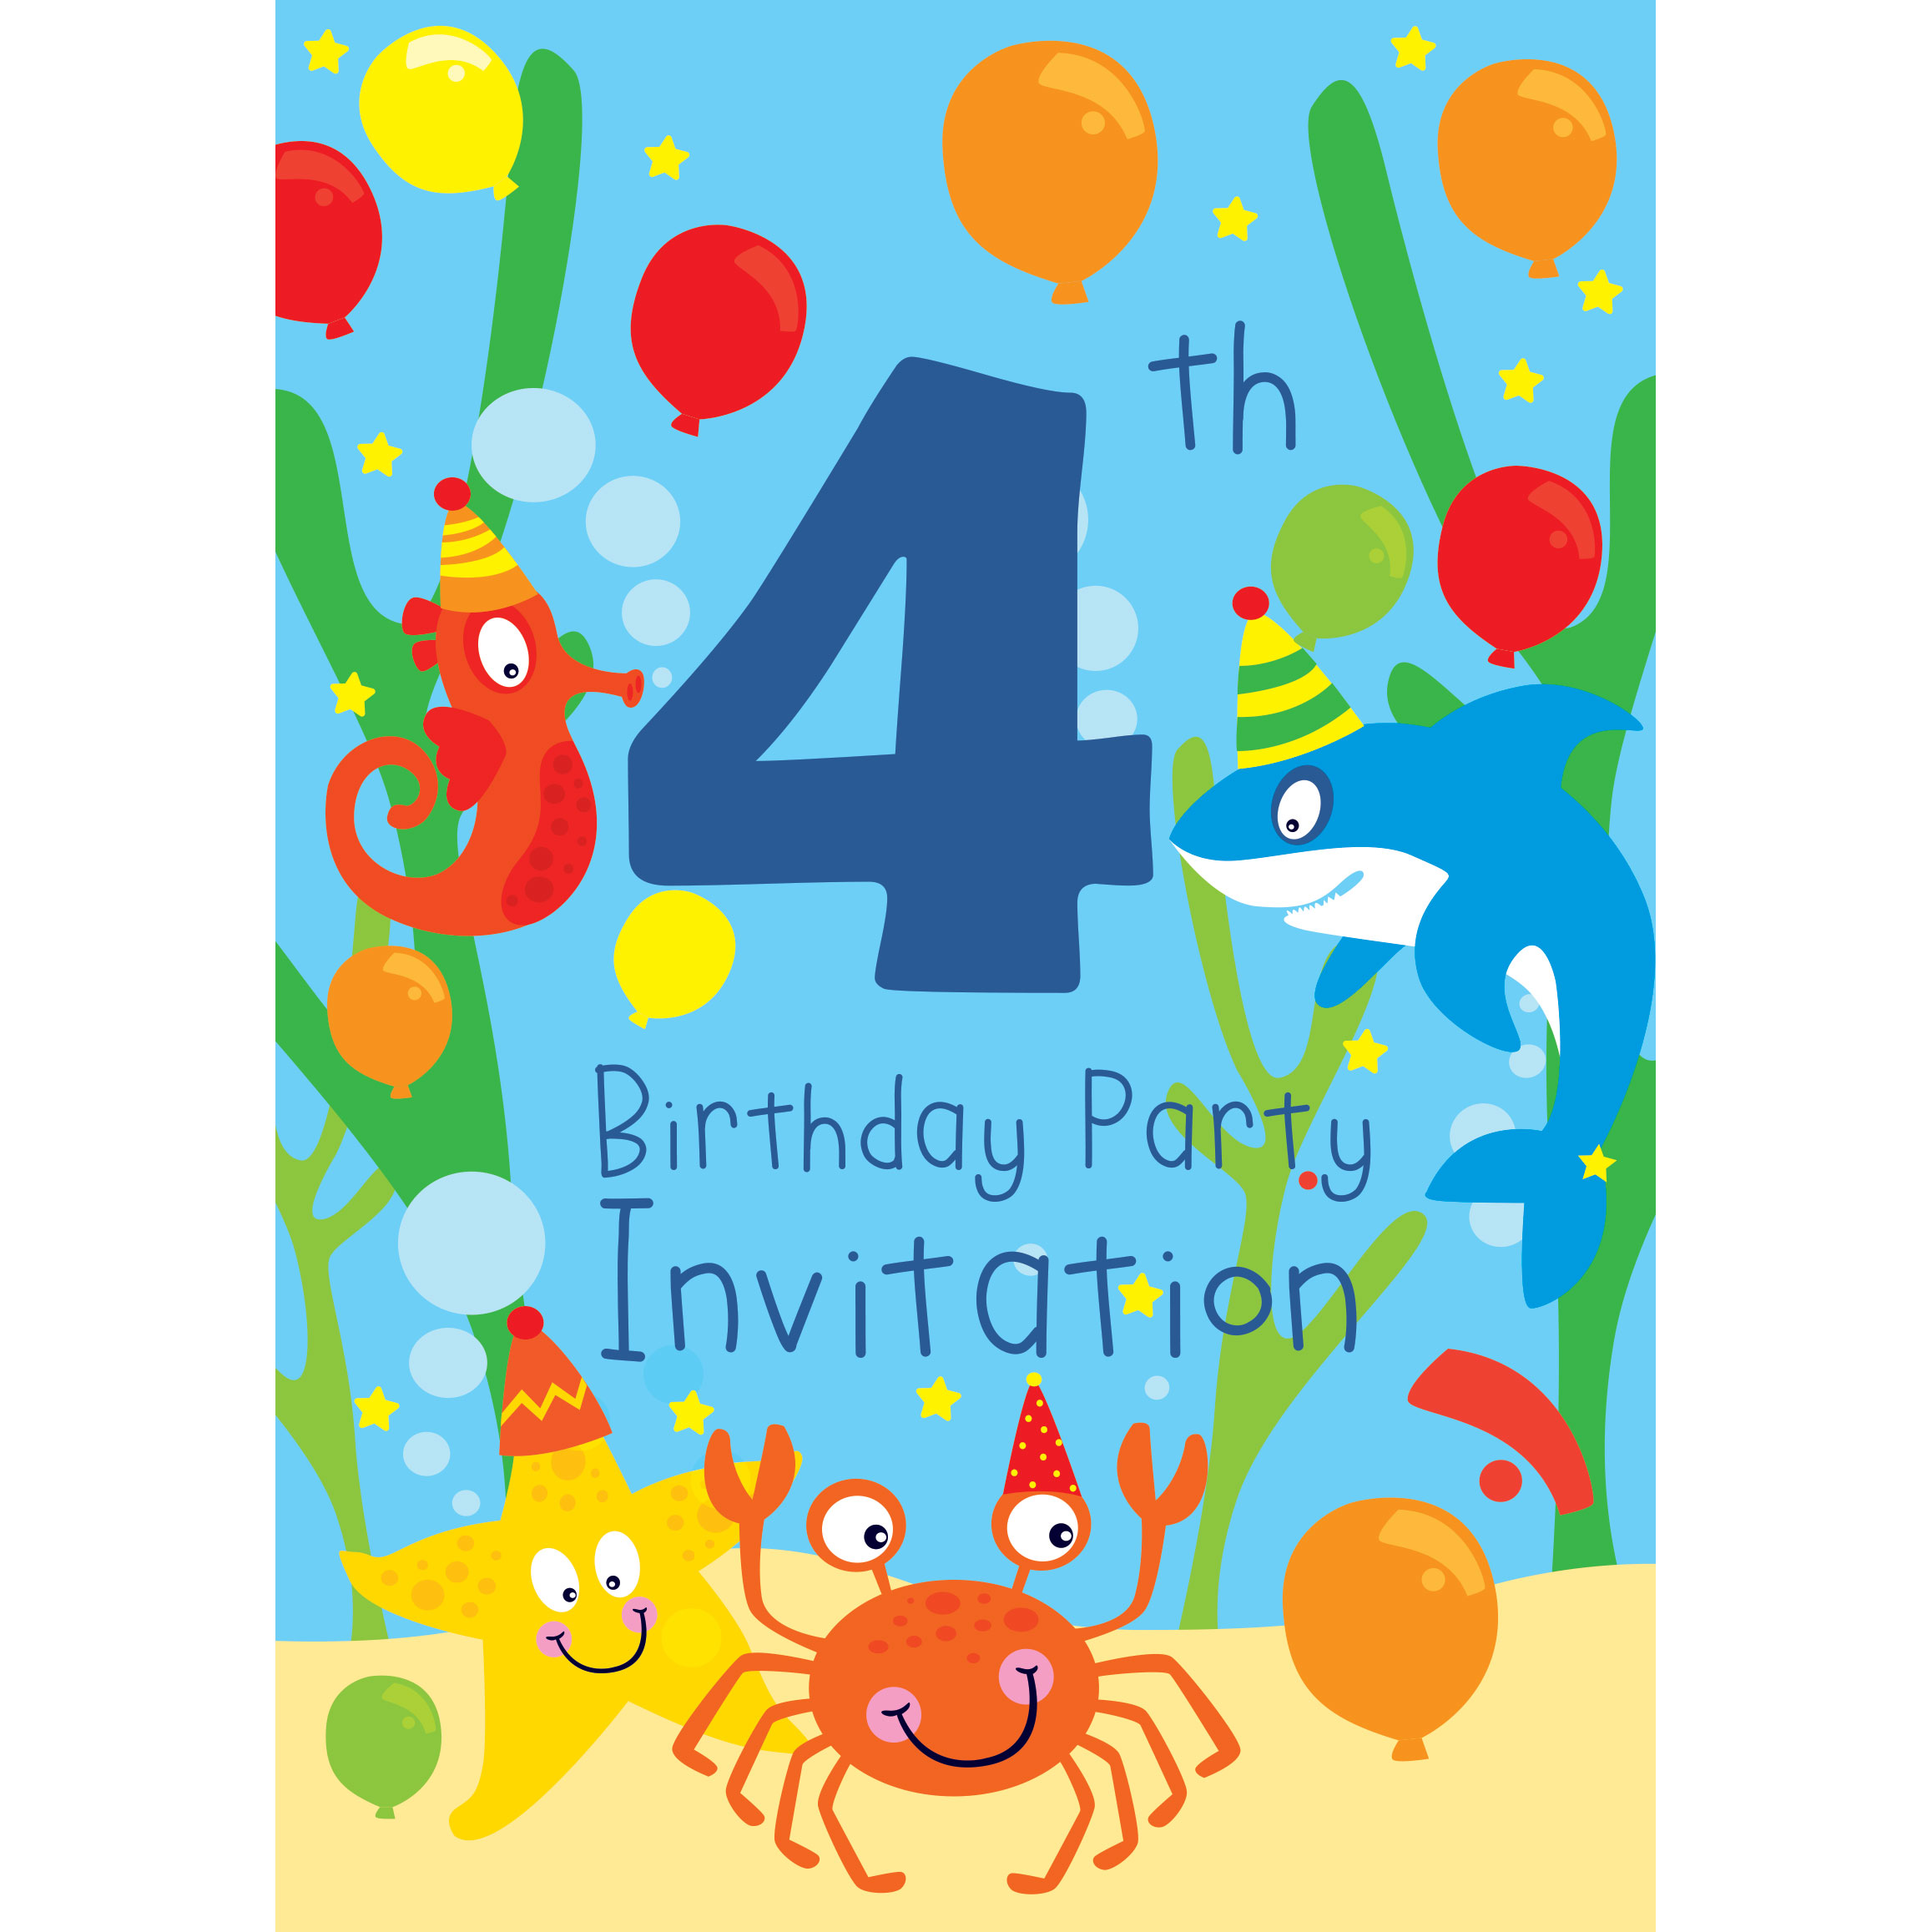 4th Birthday Party Invitations Seroton Ponderresearch Co